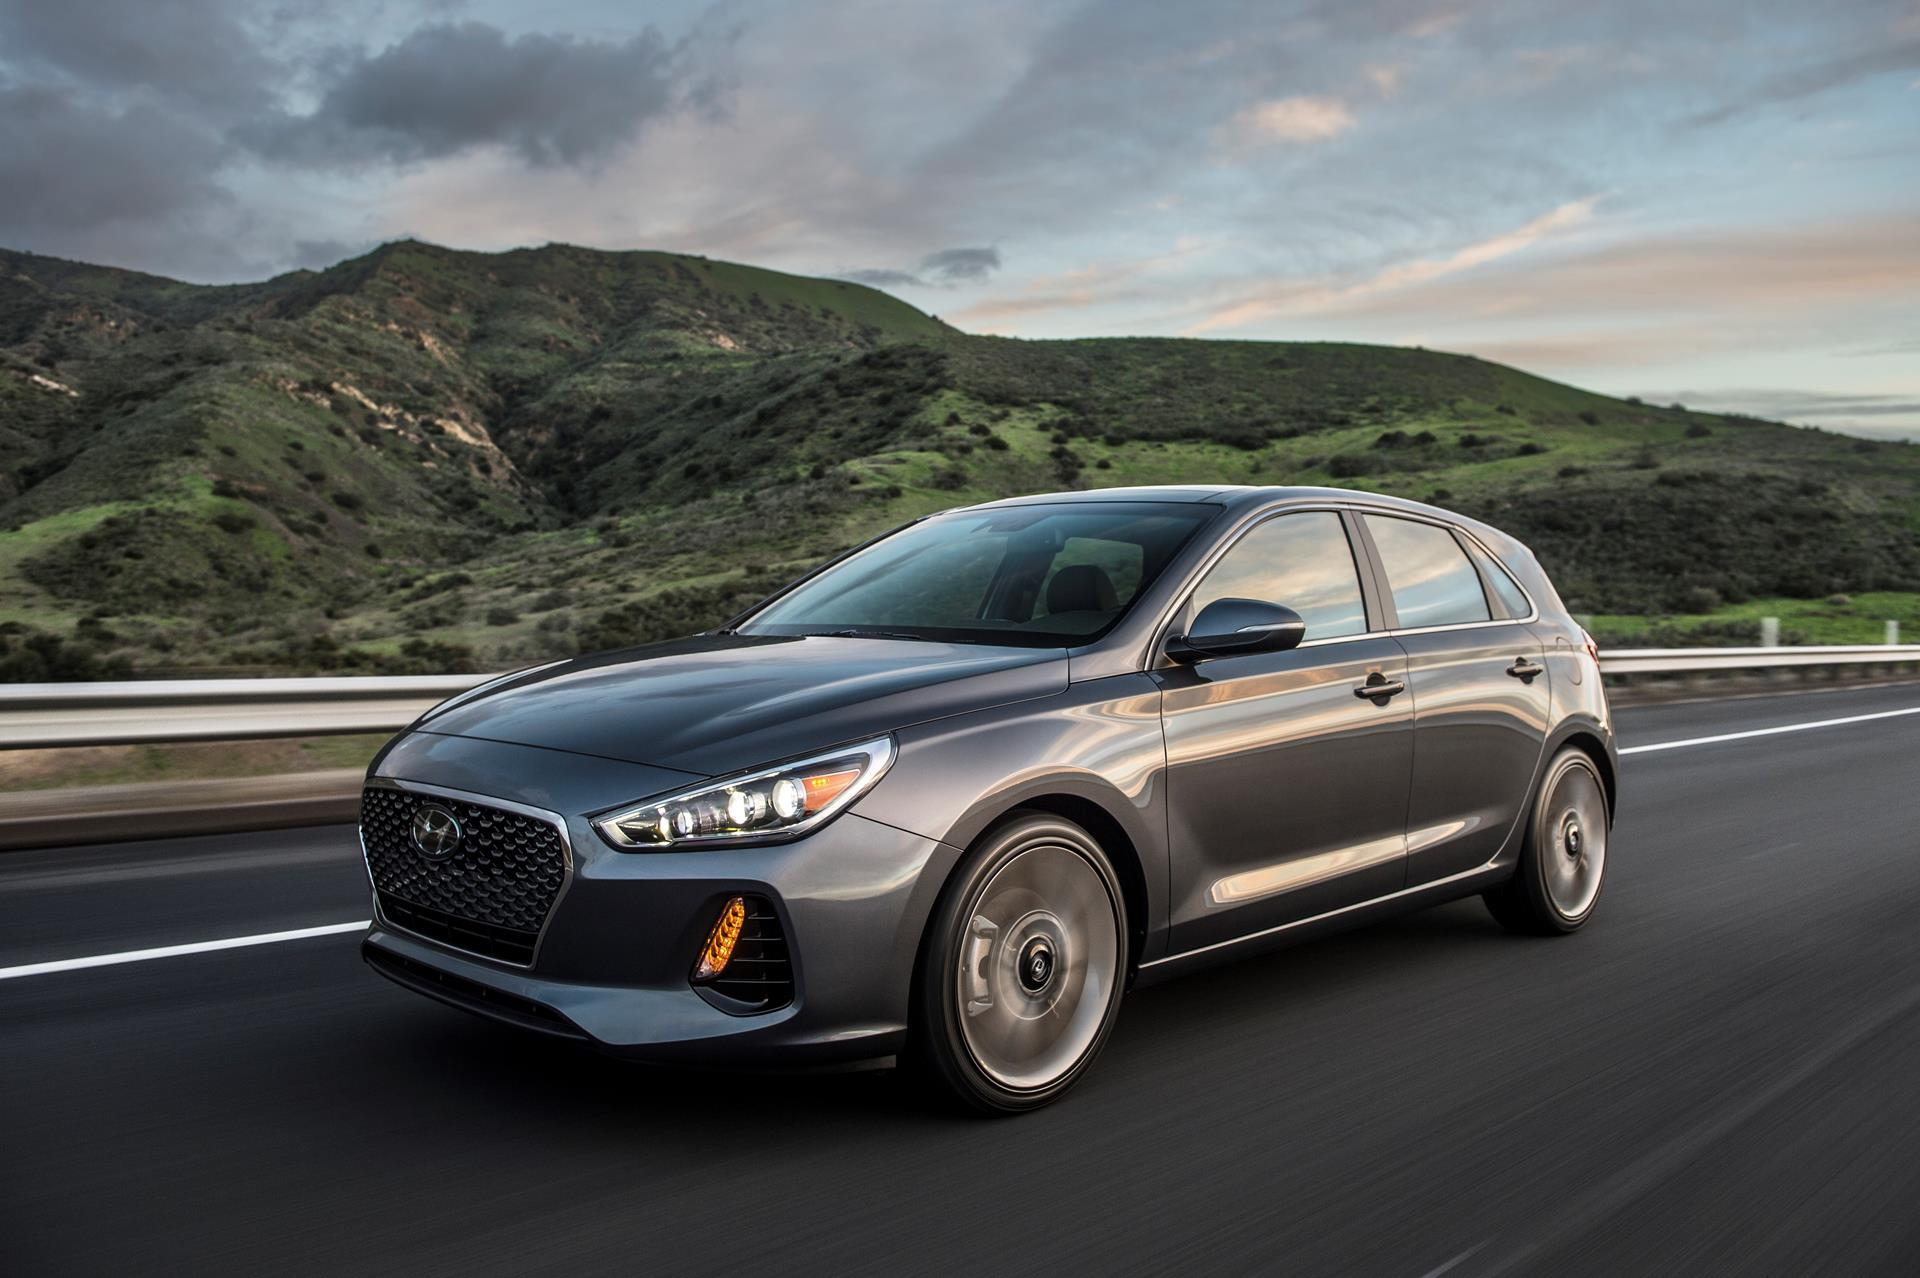 2018 Hyundai Elantra Gt News And Information Conceptcarz Com